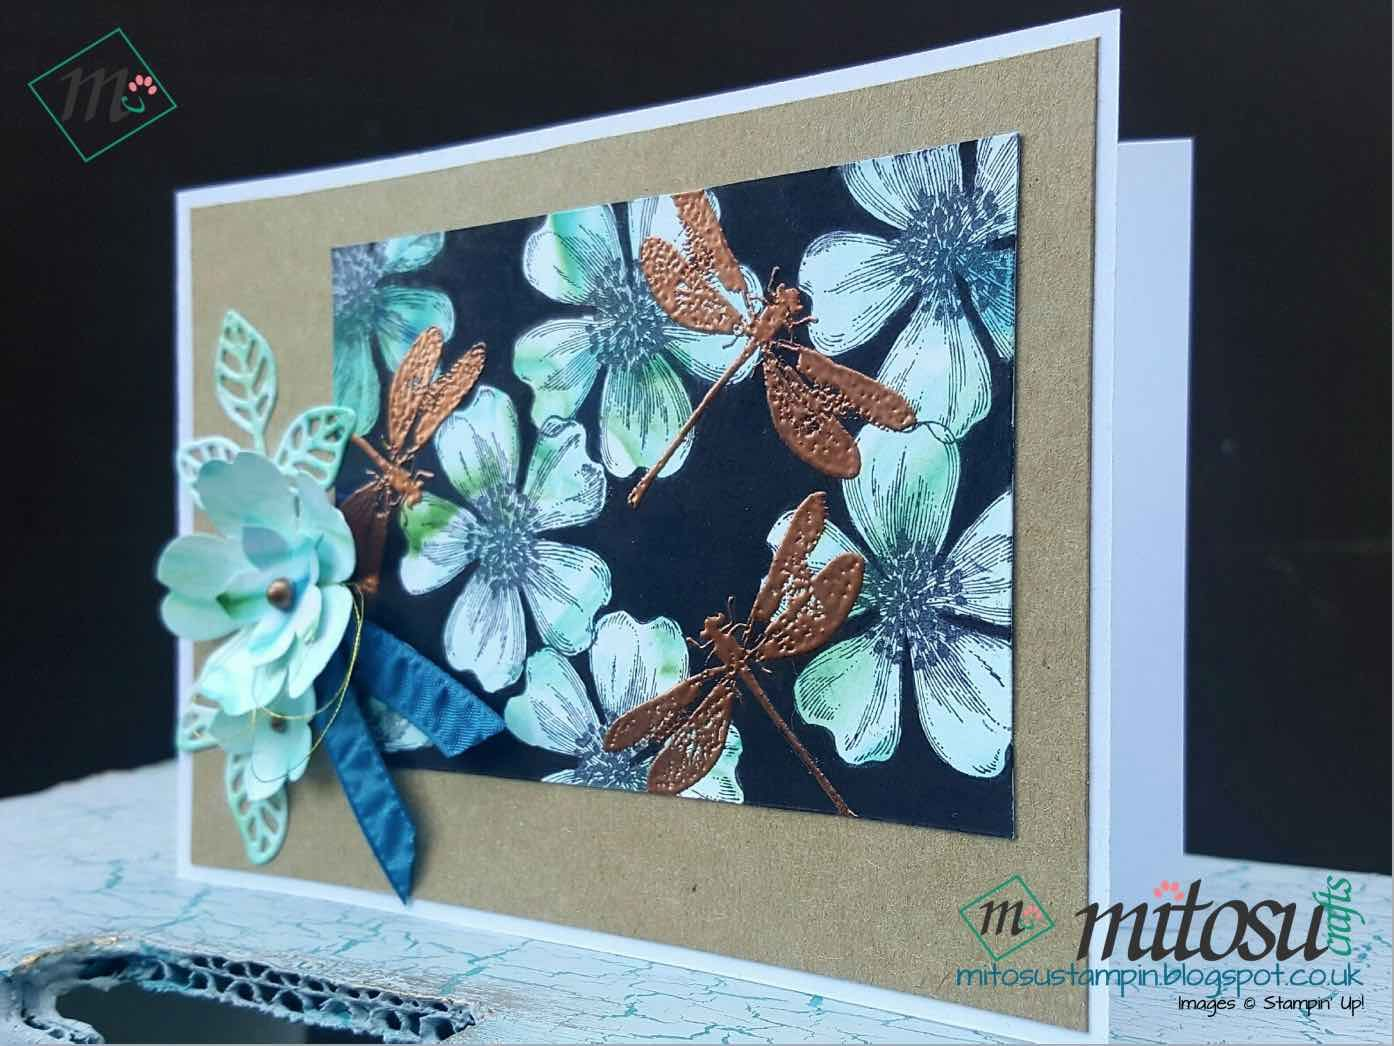 Card Making Class Ideas Part - 40: Independant Stampinu0027 Up! Demonstrator In Basingstoke Sharing Project Ideas,  Inspiration And Local Card Making Classes.